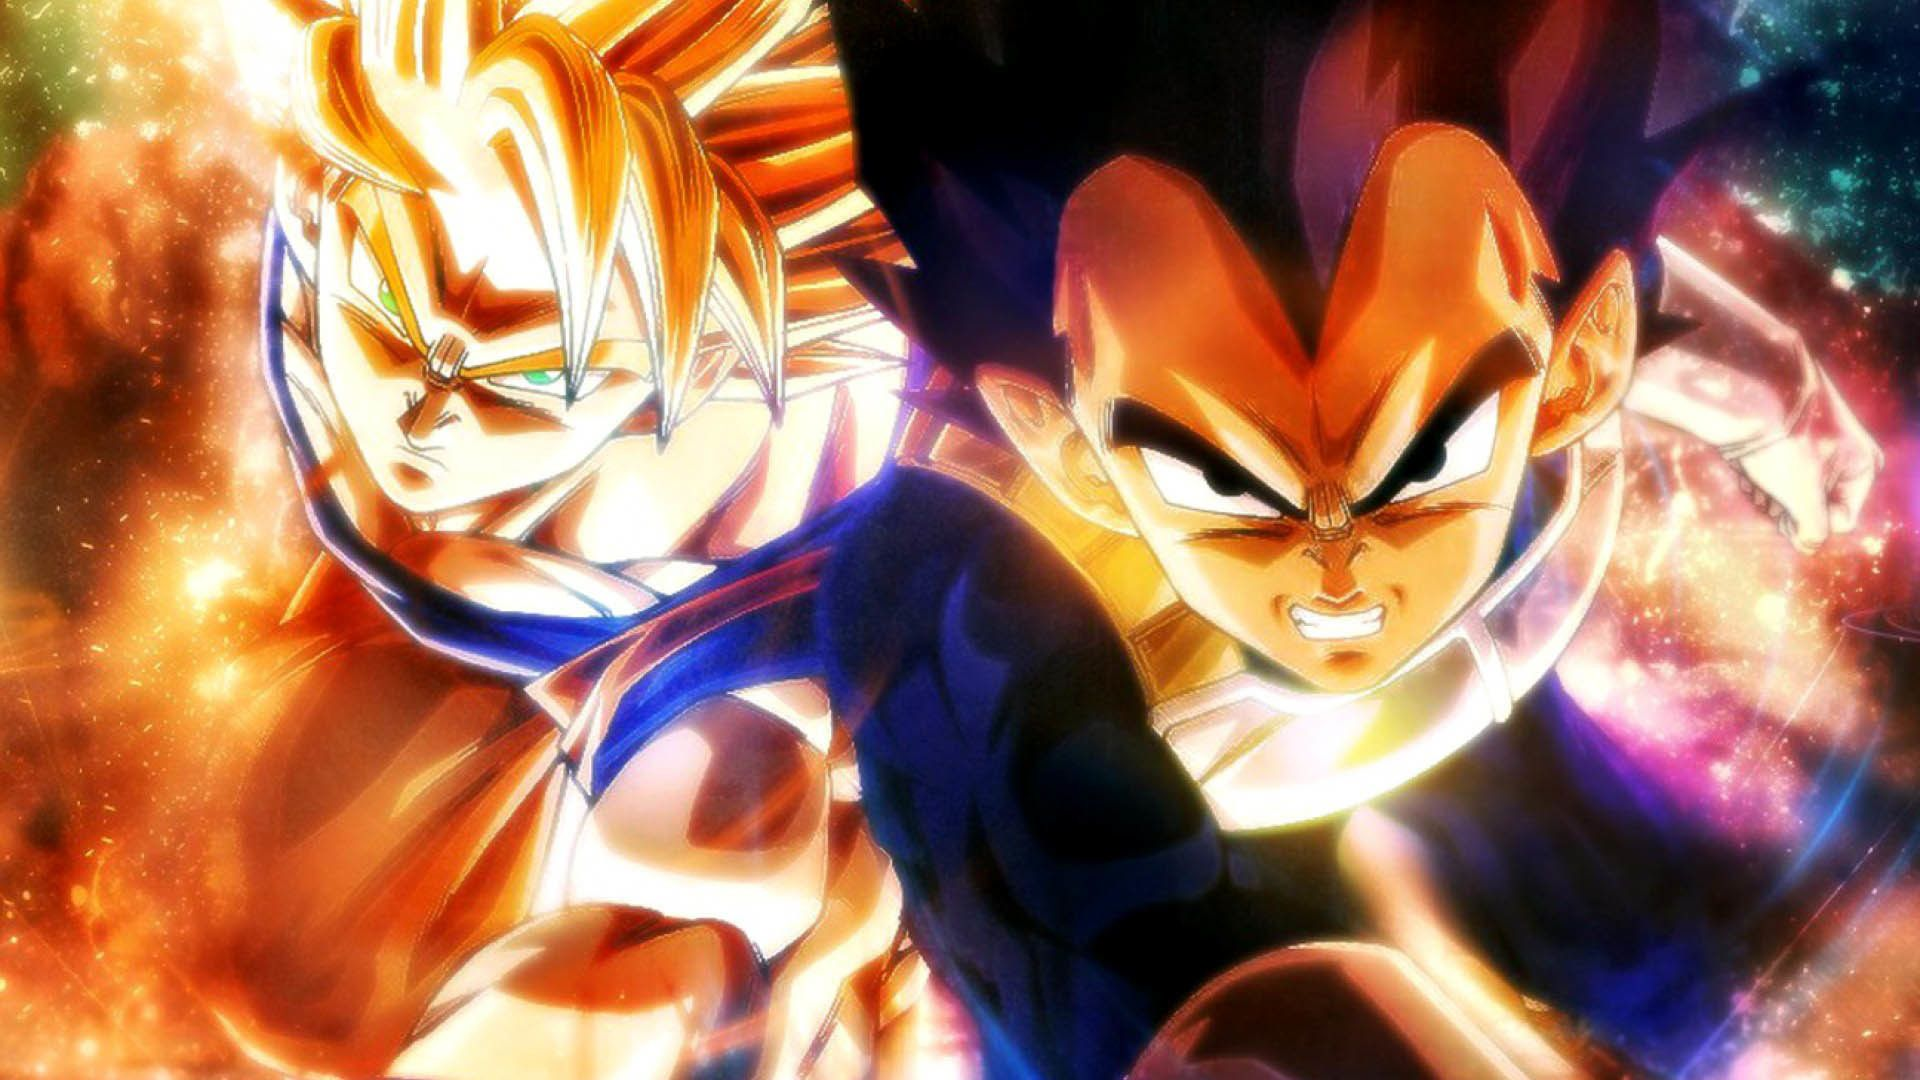 1920x1080 Dragon Ball Goku Vegeta 1920x1080 Wallpaper With